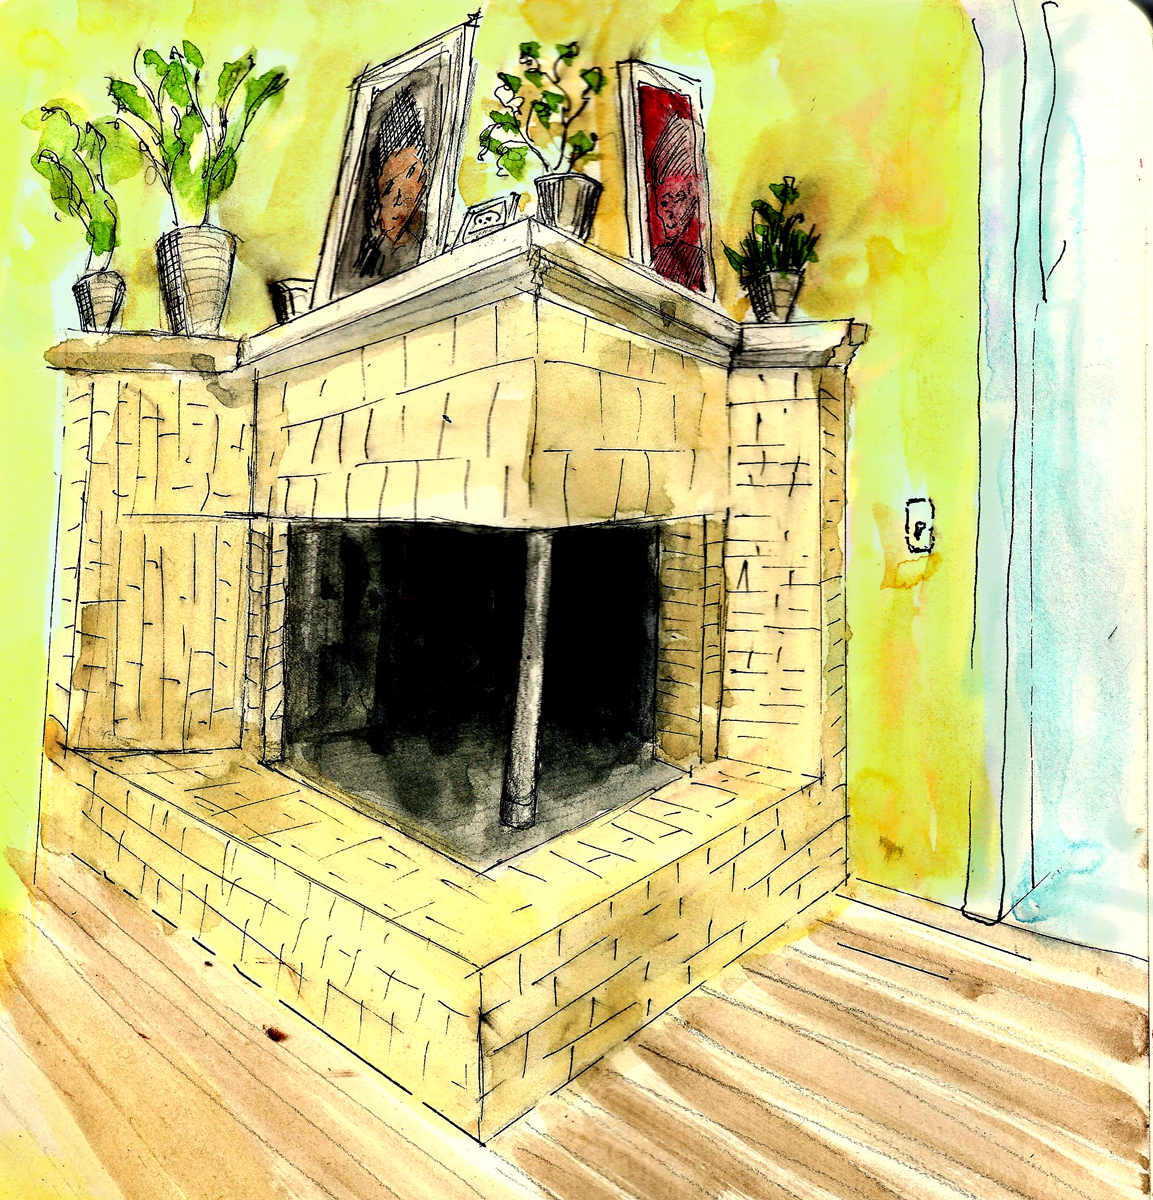 Even though I've looked at this fireplace thousands of times, I couldn't draw it accurately from memory. I used a photo reference for this version.